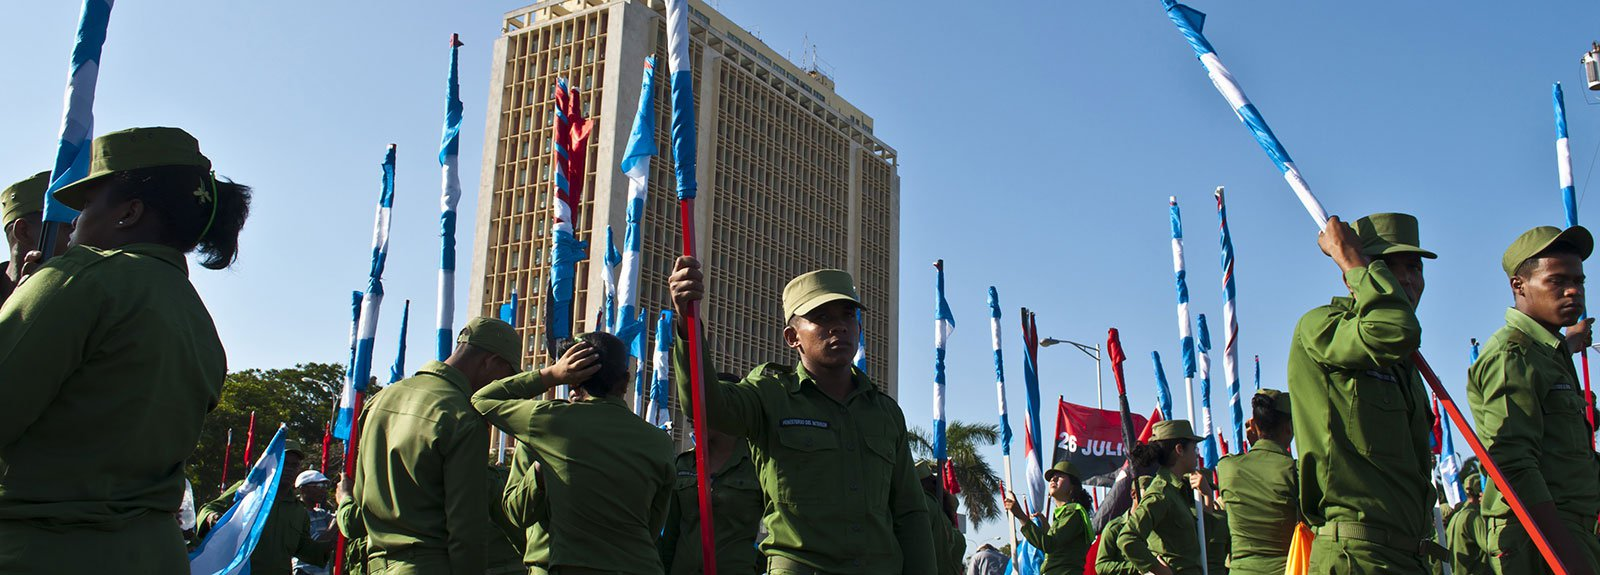 Militars dress in green with cuban flags